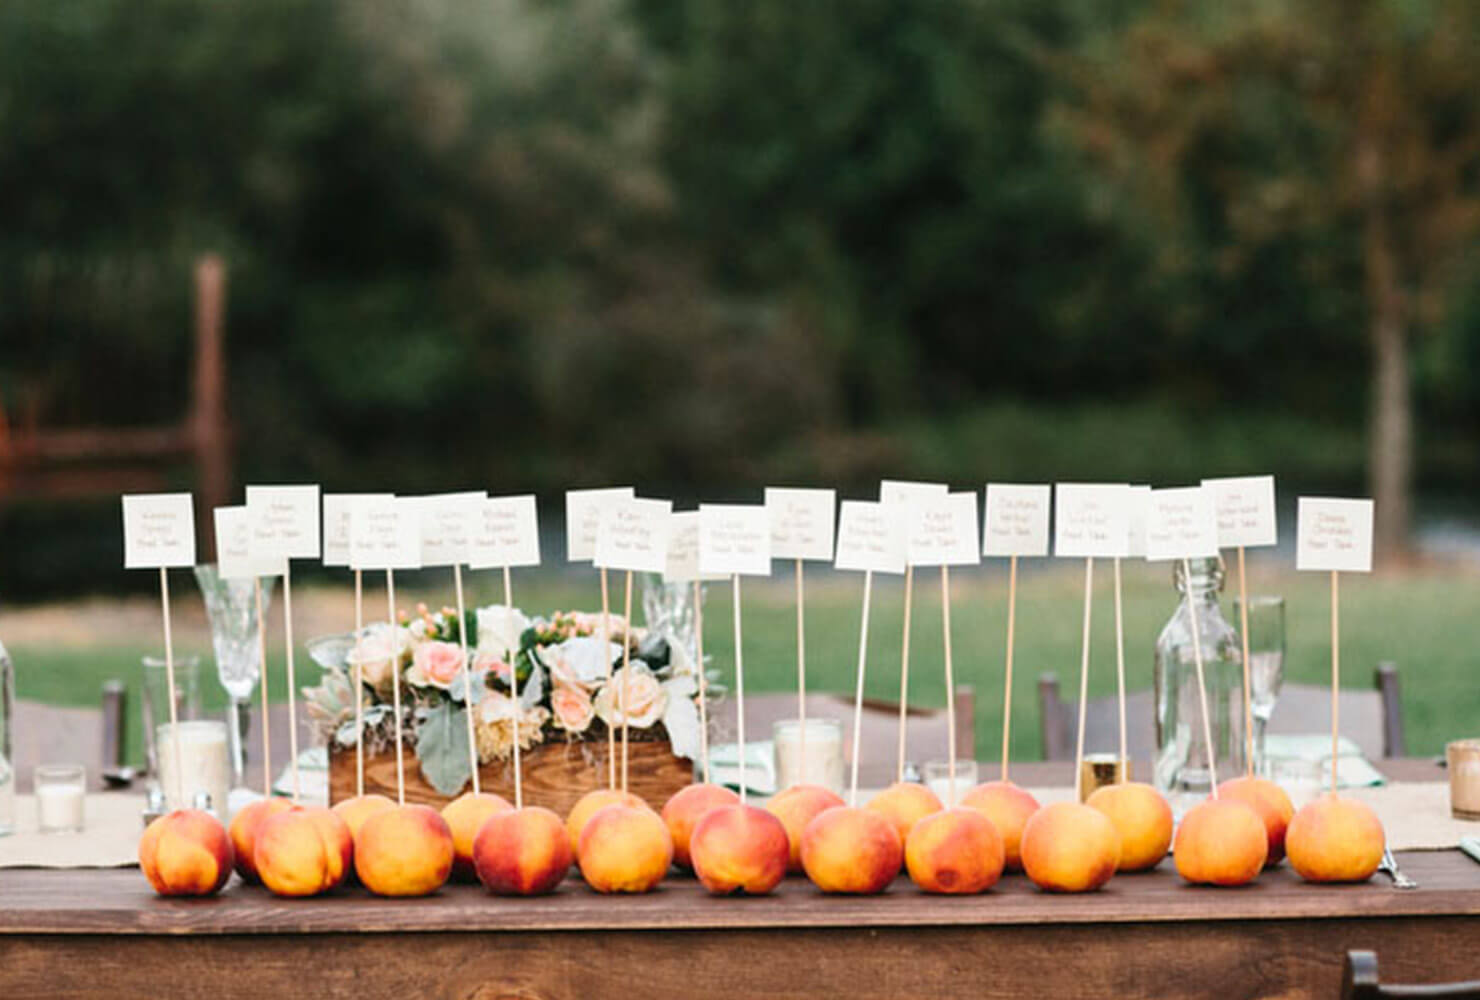 colorful peaches on a table with wedding name cards.